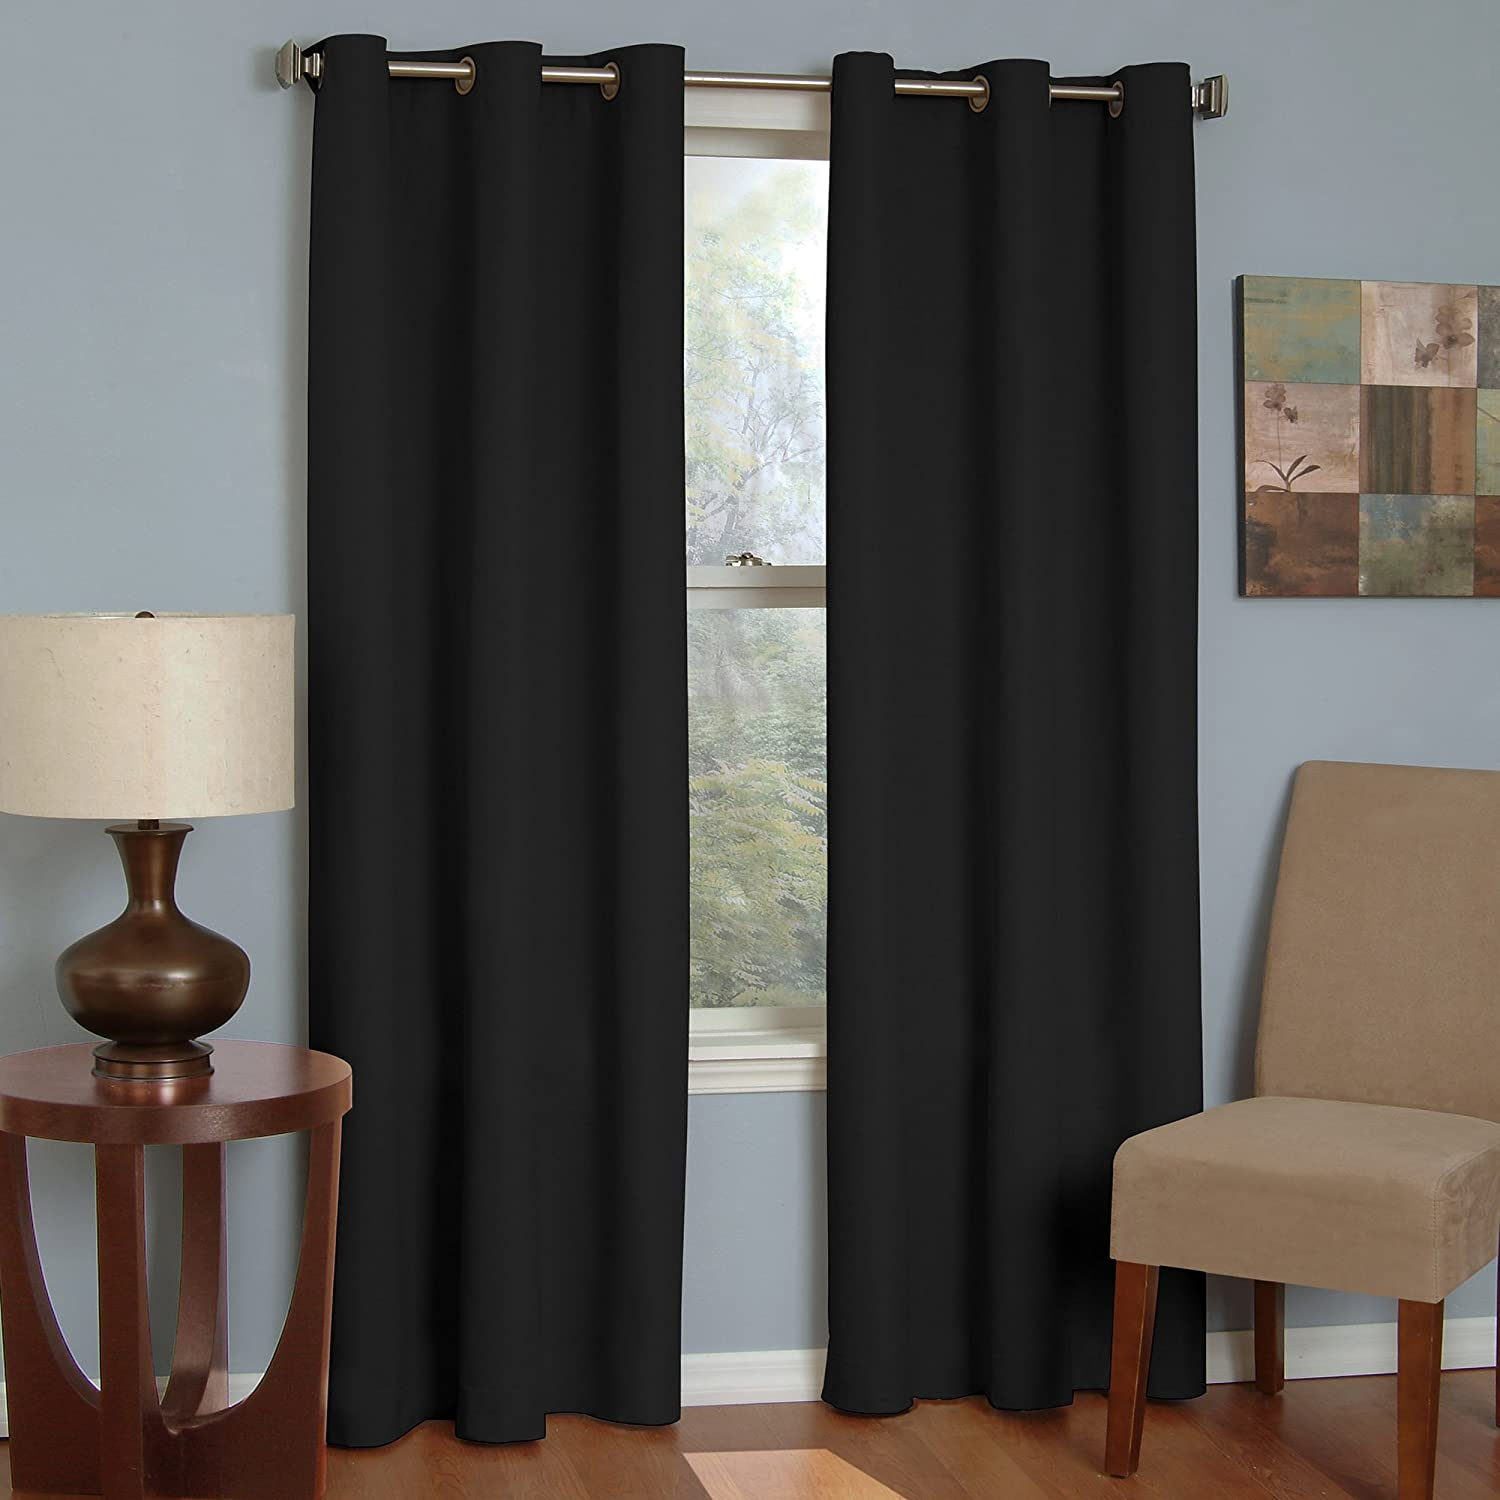 Beige sheetsnthings Soho Solid 42-Inch Wide x 63-Inch Long Thermal Insulated Blackout Grommet Top Tie-Up Shade for Small Window